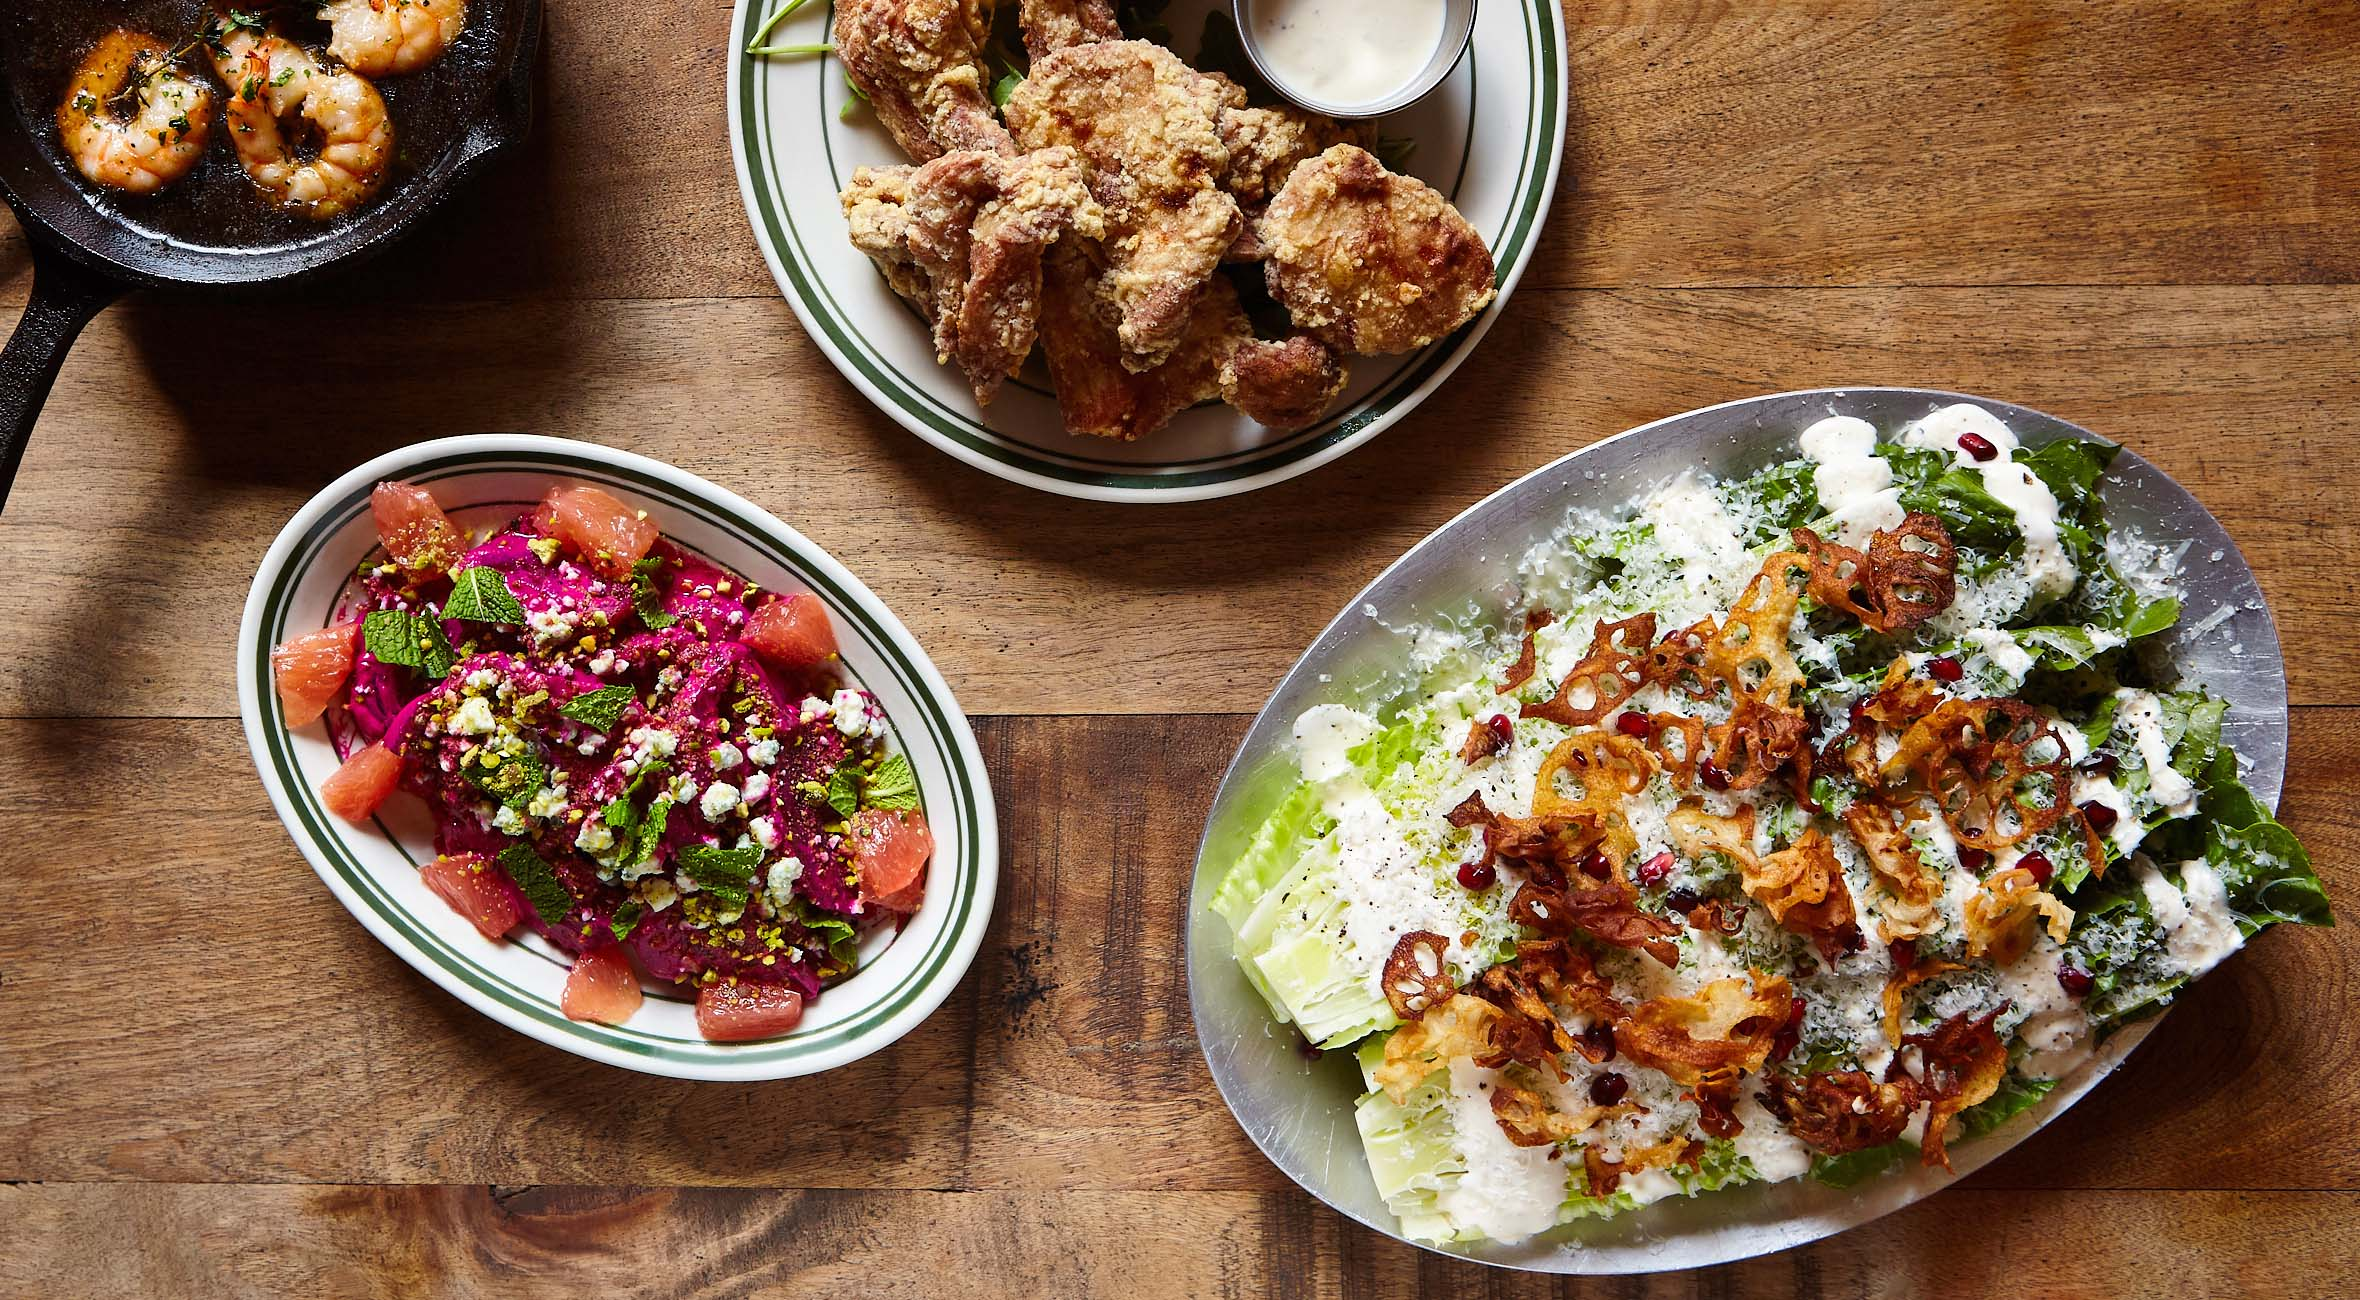 3-Course Menu at Trad Room in Bed-Stuy – One of Brooklyn's Best New Restaurants